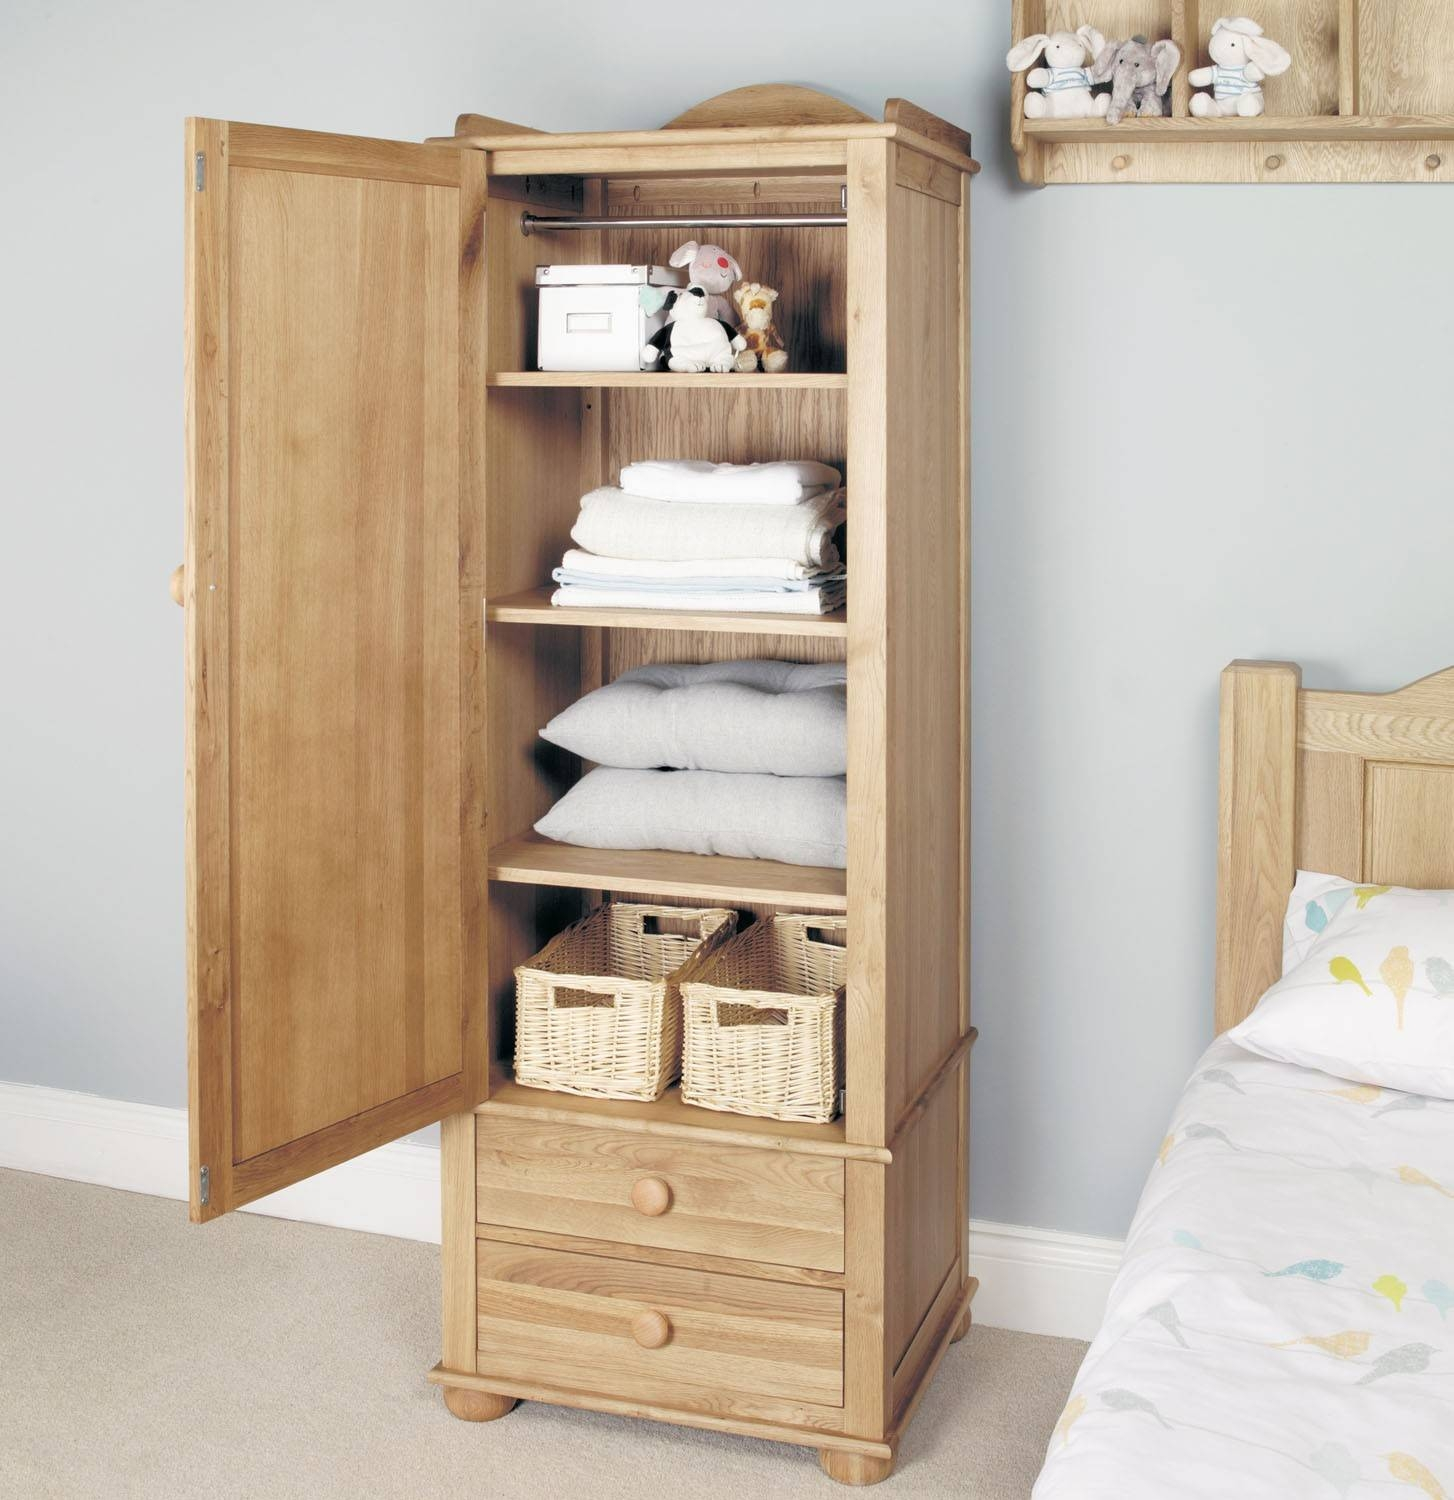 Amelie Oak Childrens Single Wardrobe - Amelie Oak Children's within Single Wardrobe With Drawers and Shelves (Image 5 of 30)